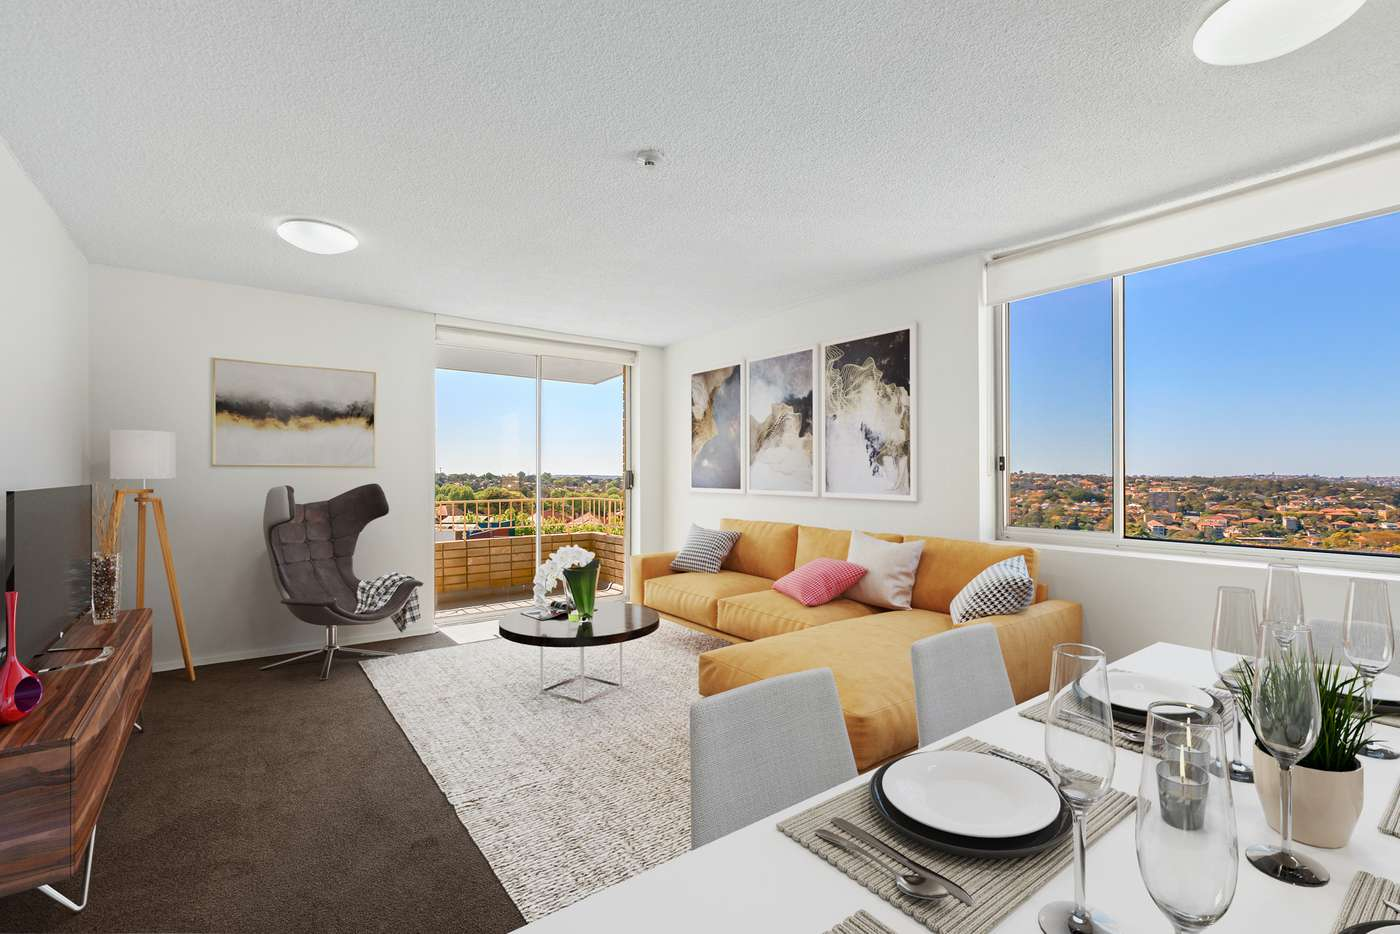 Main view of Homely apartment listing, 31/25 Hampden Ave, Cremorne NSW 2090